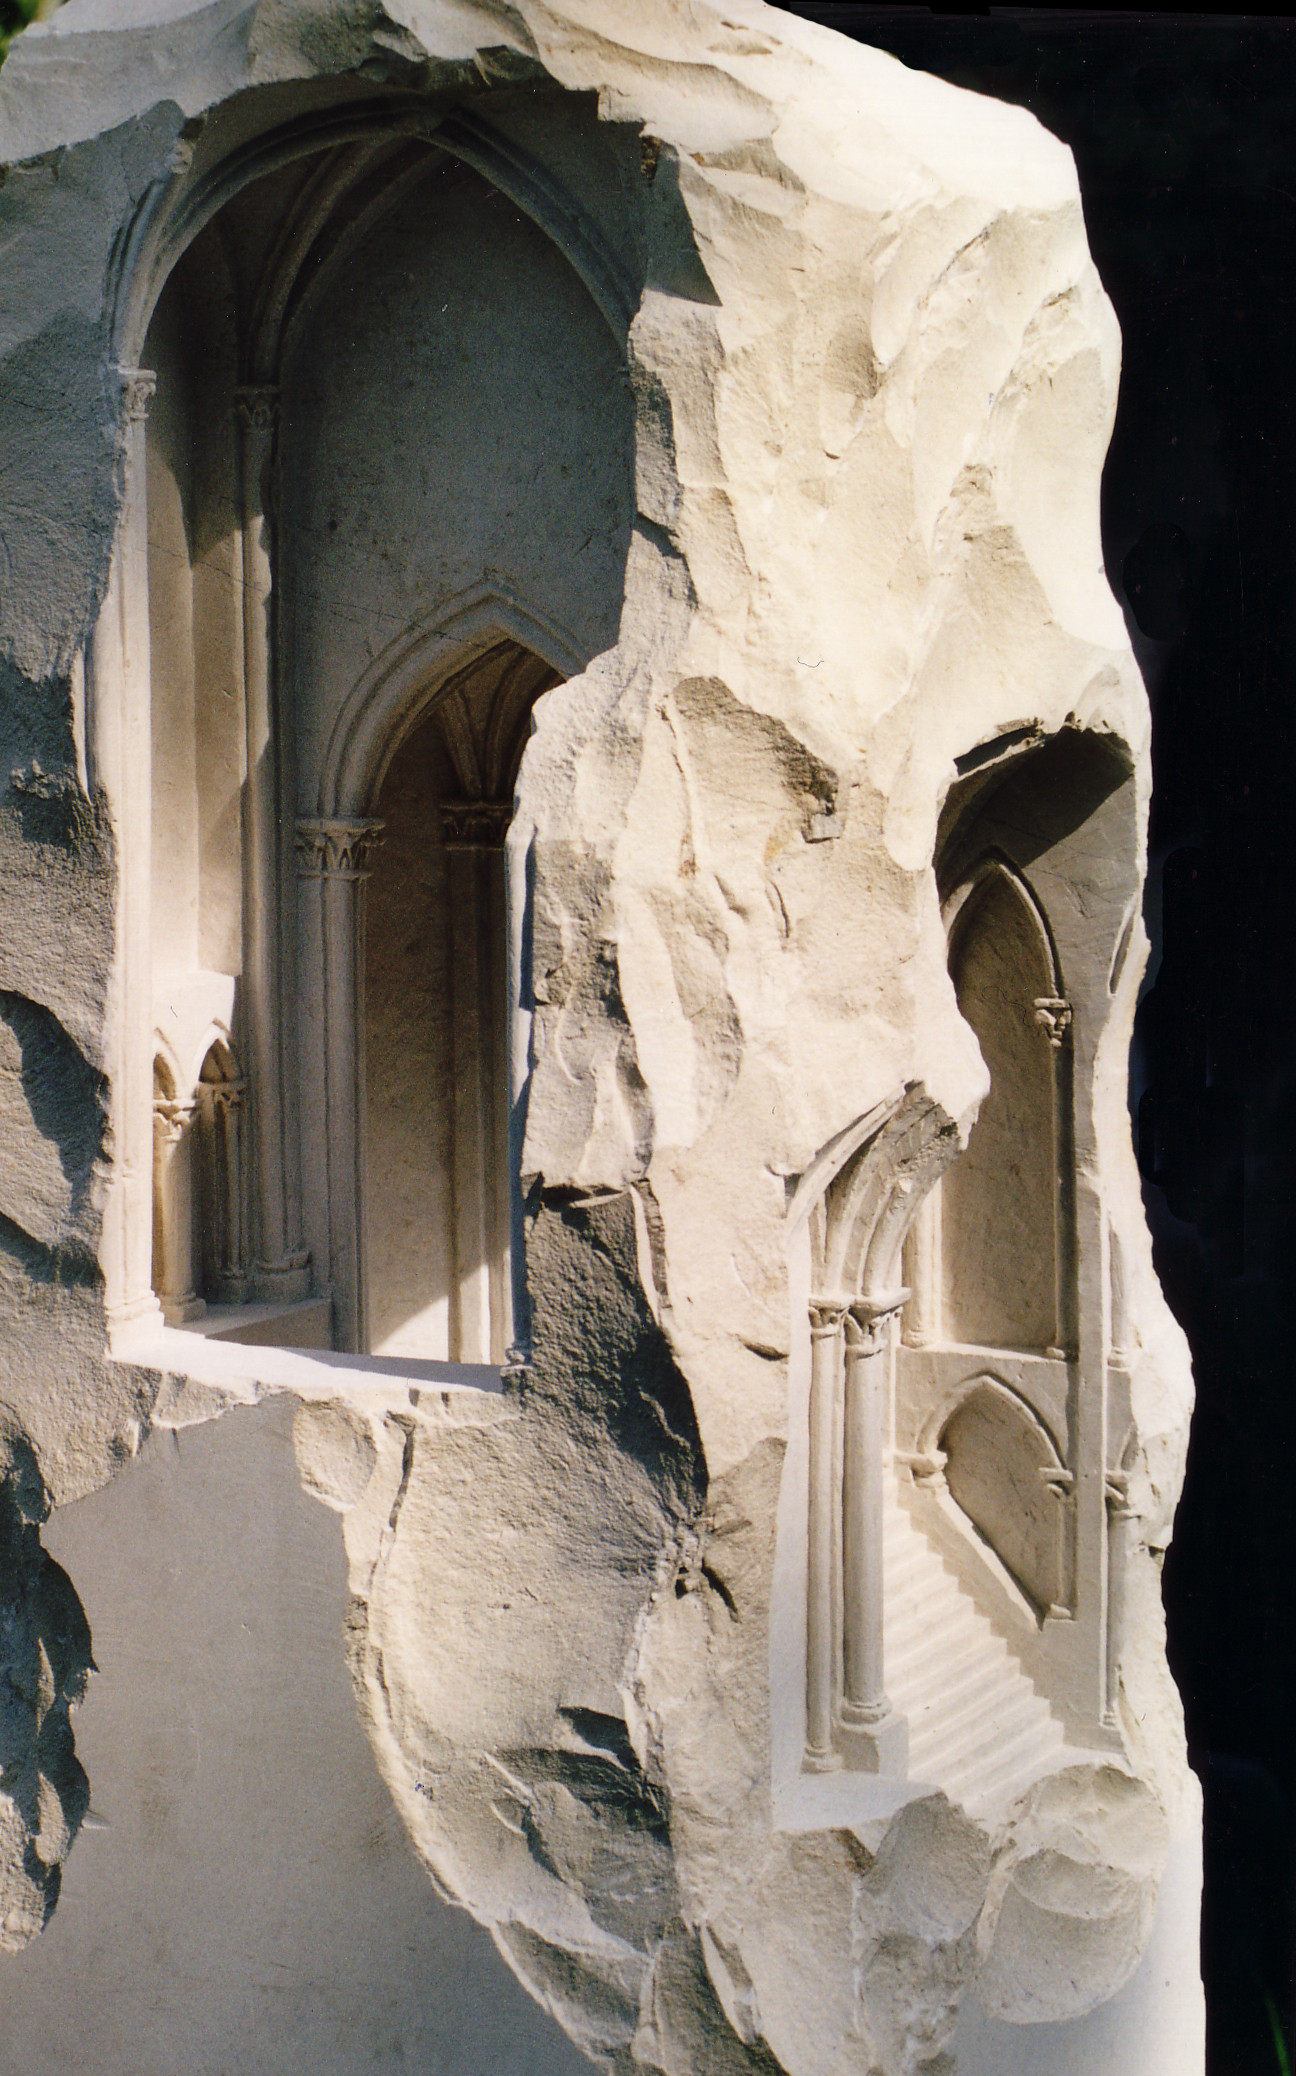 I appreciate the way the sculptor cut away at the rock to eliminate the unnecessary amount of stone so that the architecture can be distinguished.